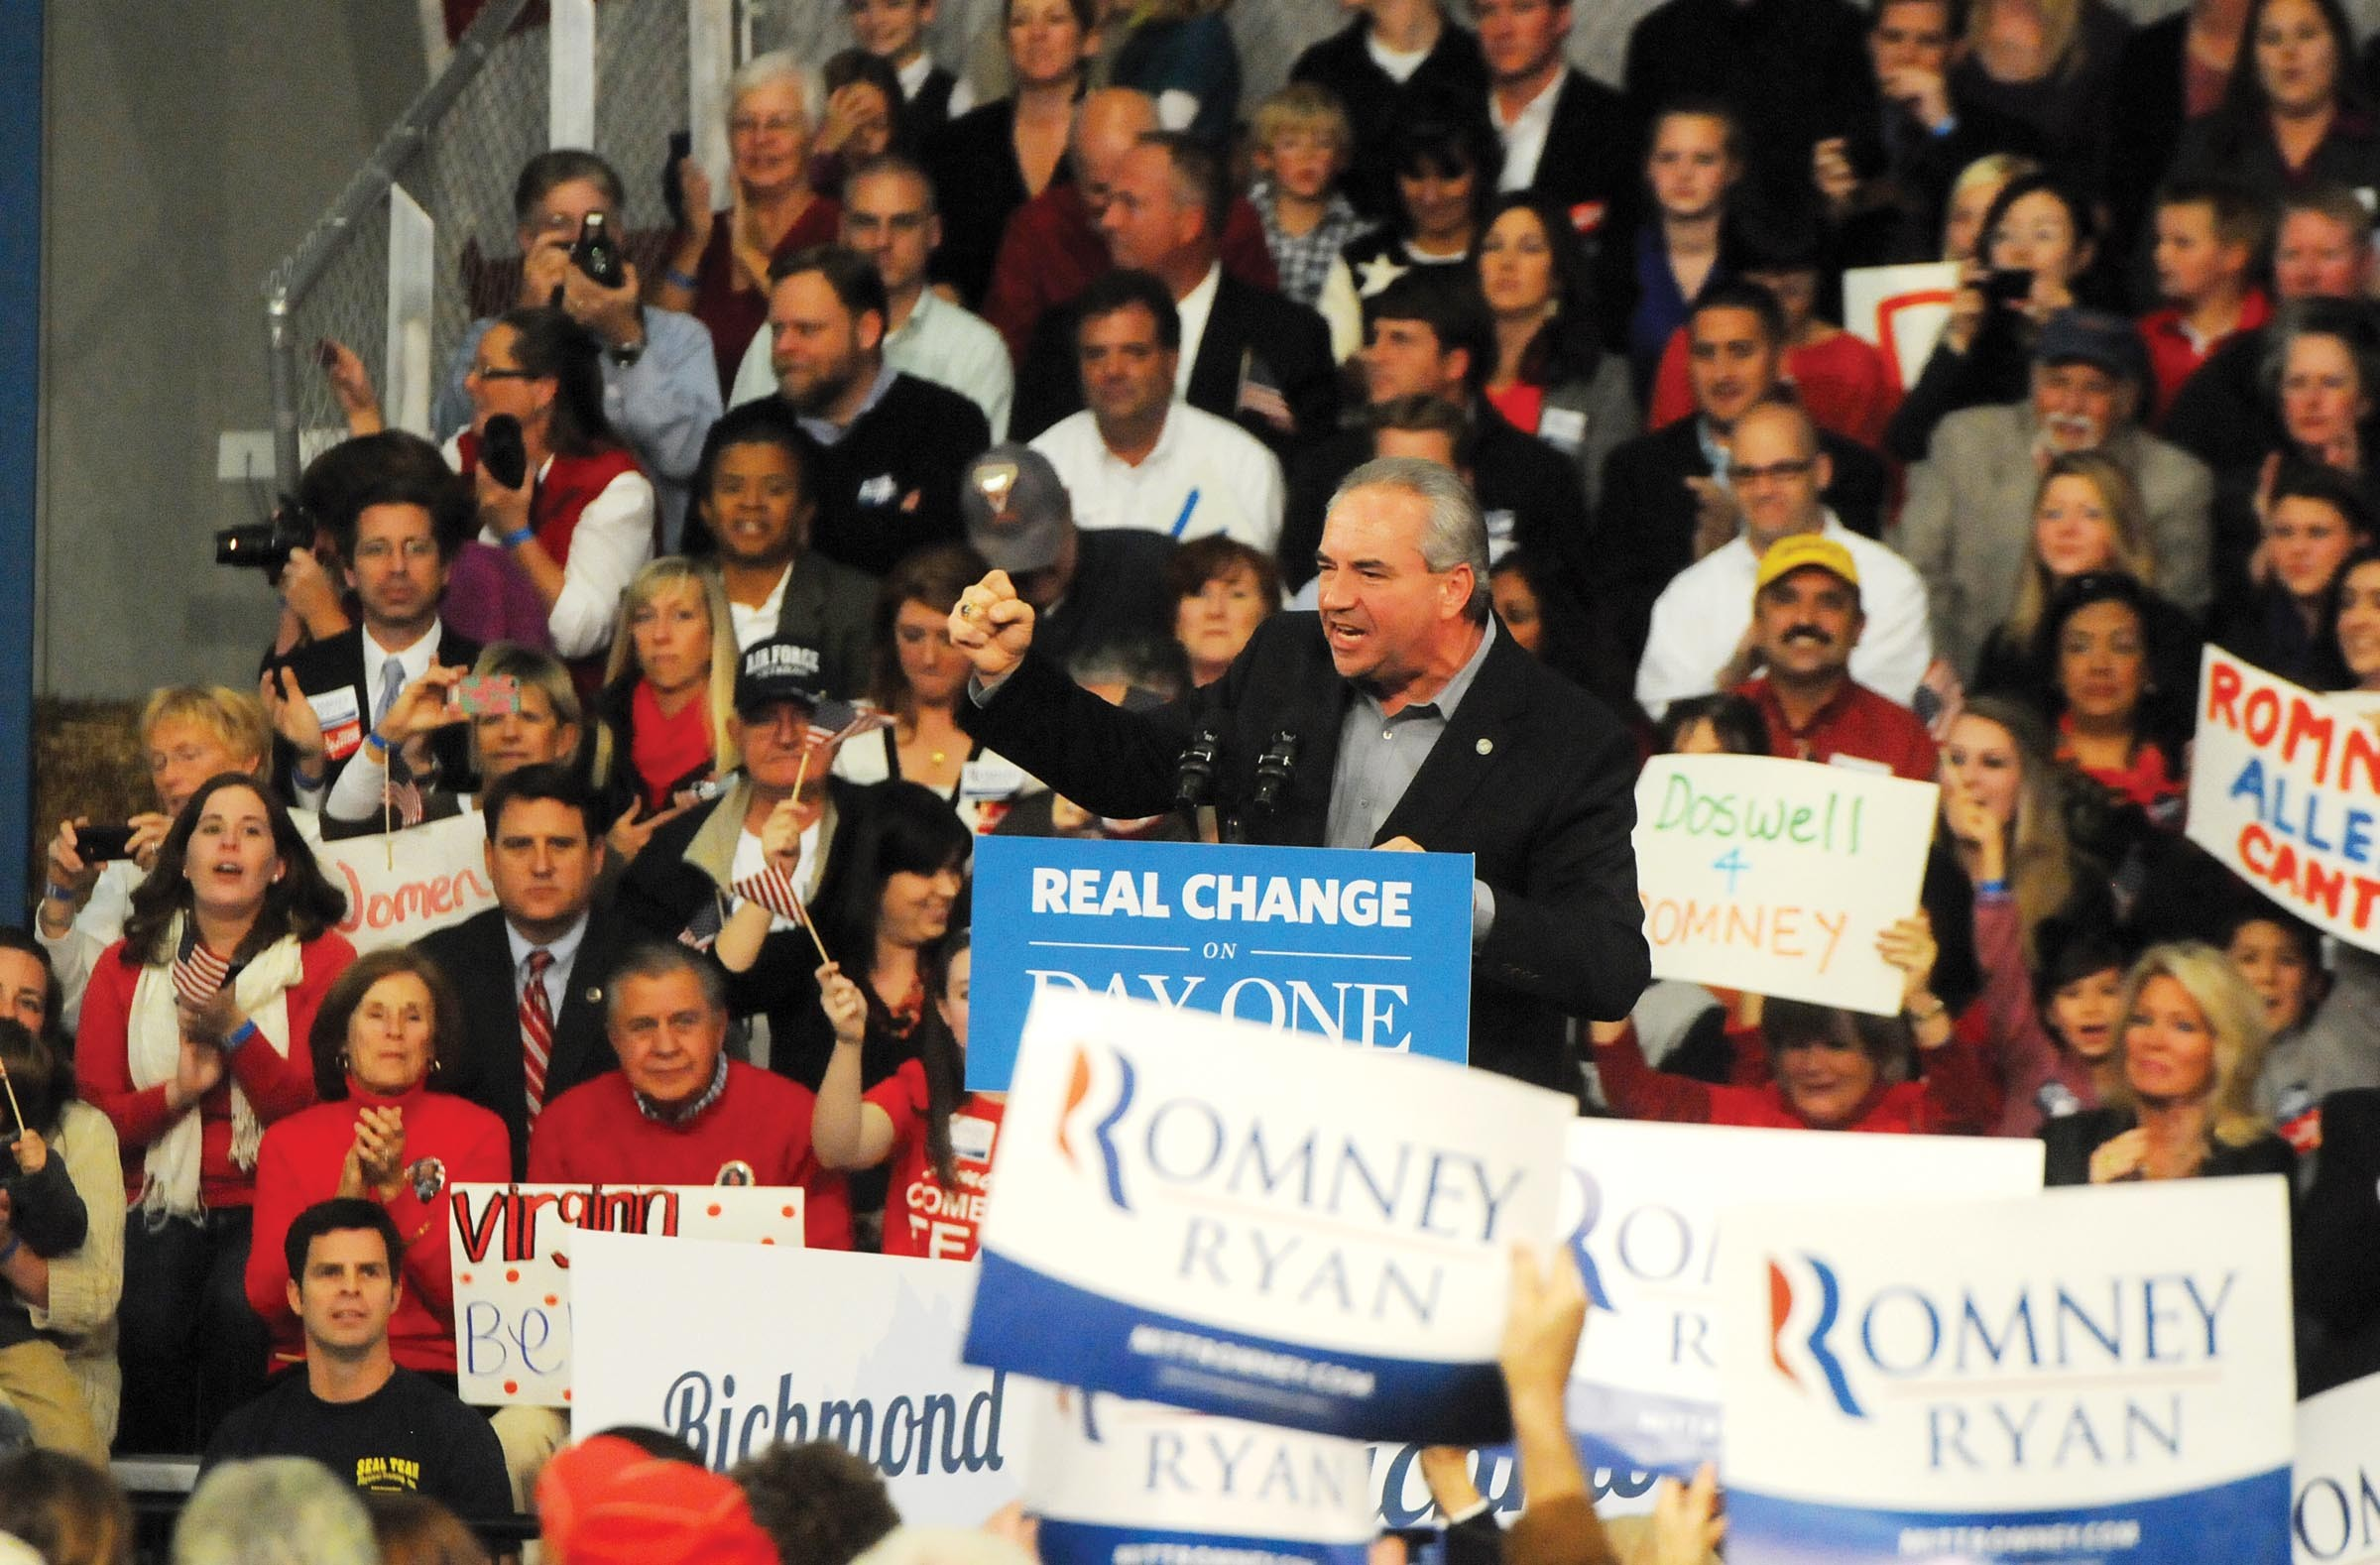 Bolling introduces then-Republican presidential candidate Mitt Romney at a campaign stop in Caroline County. - SCOTT ELMQUIST